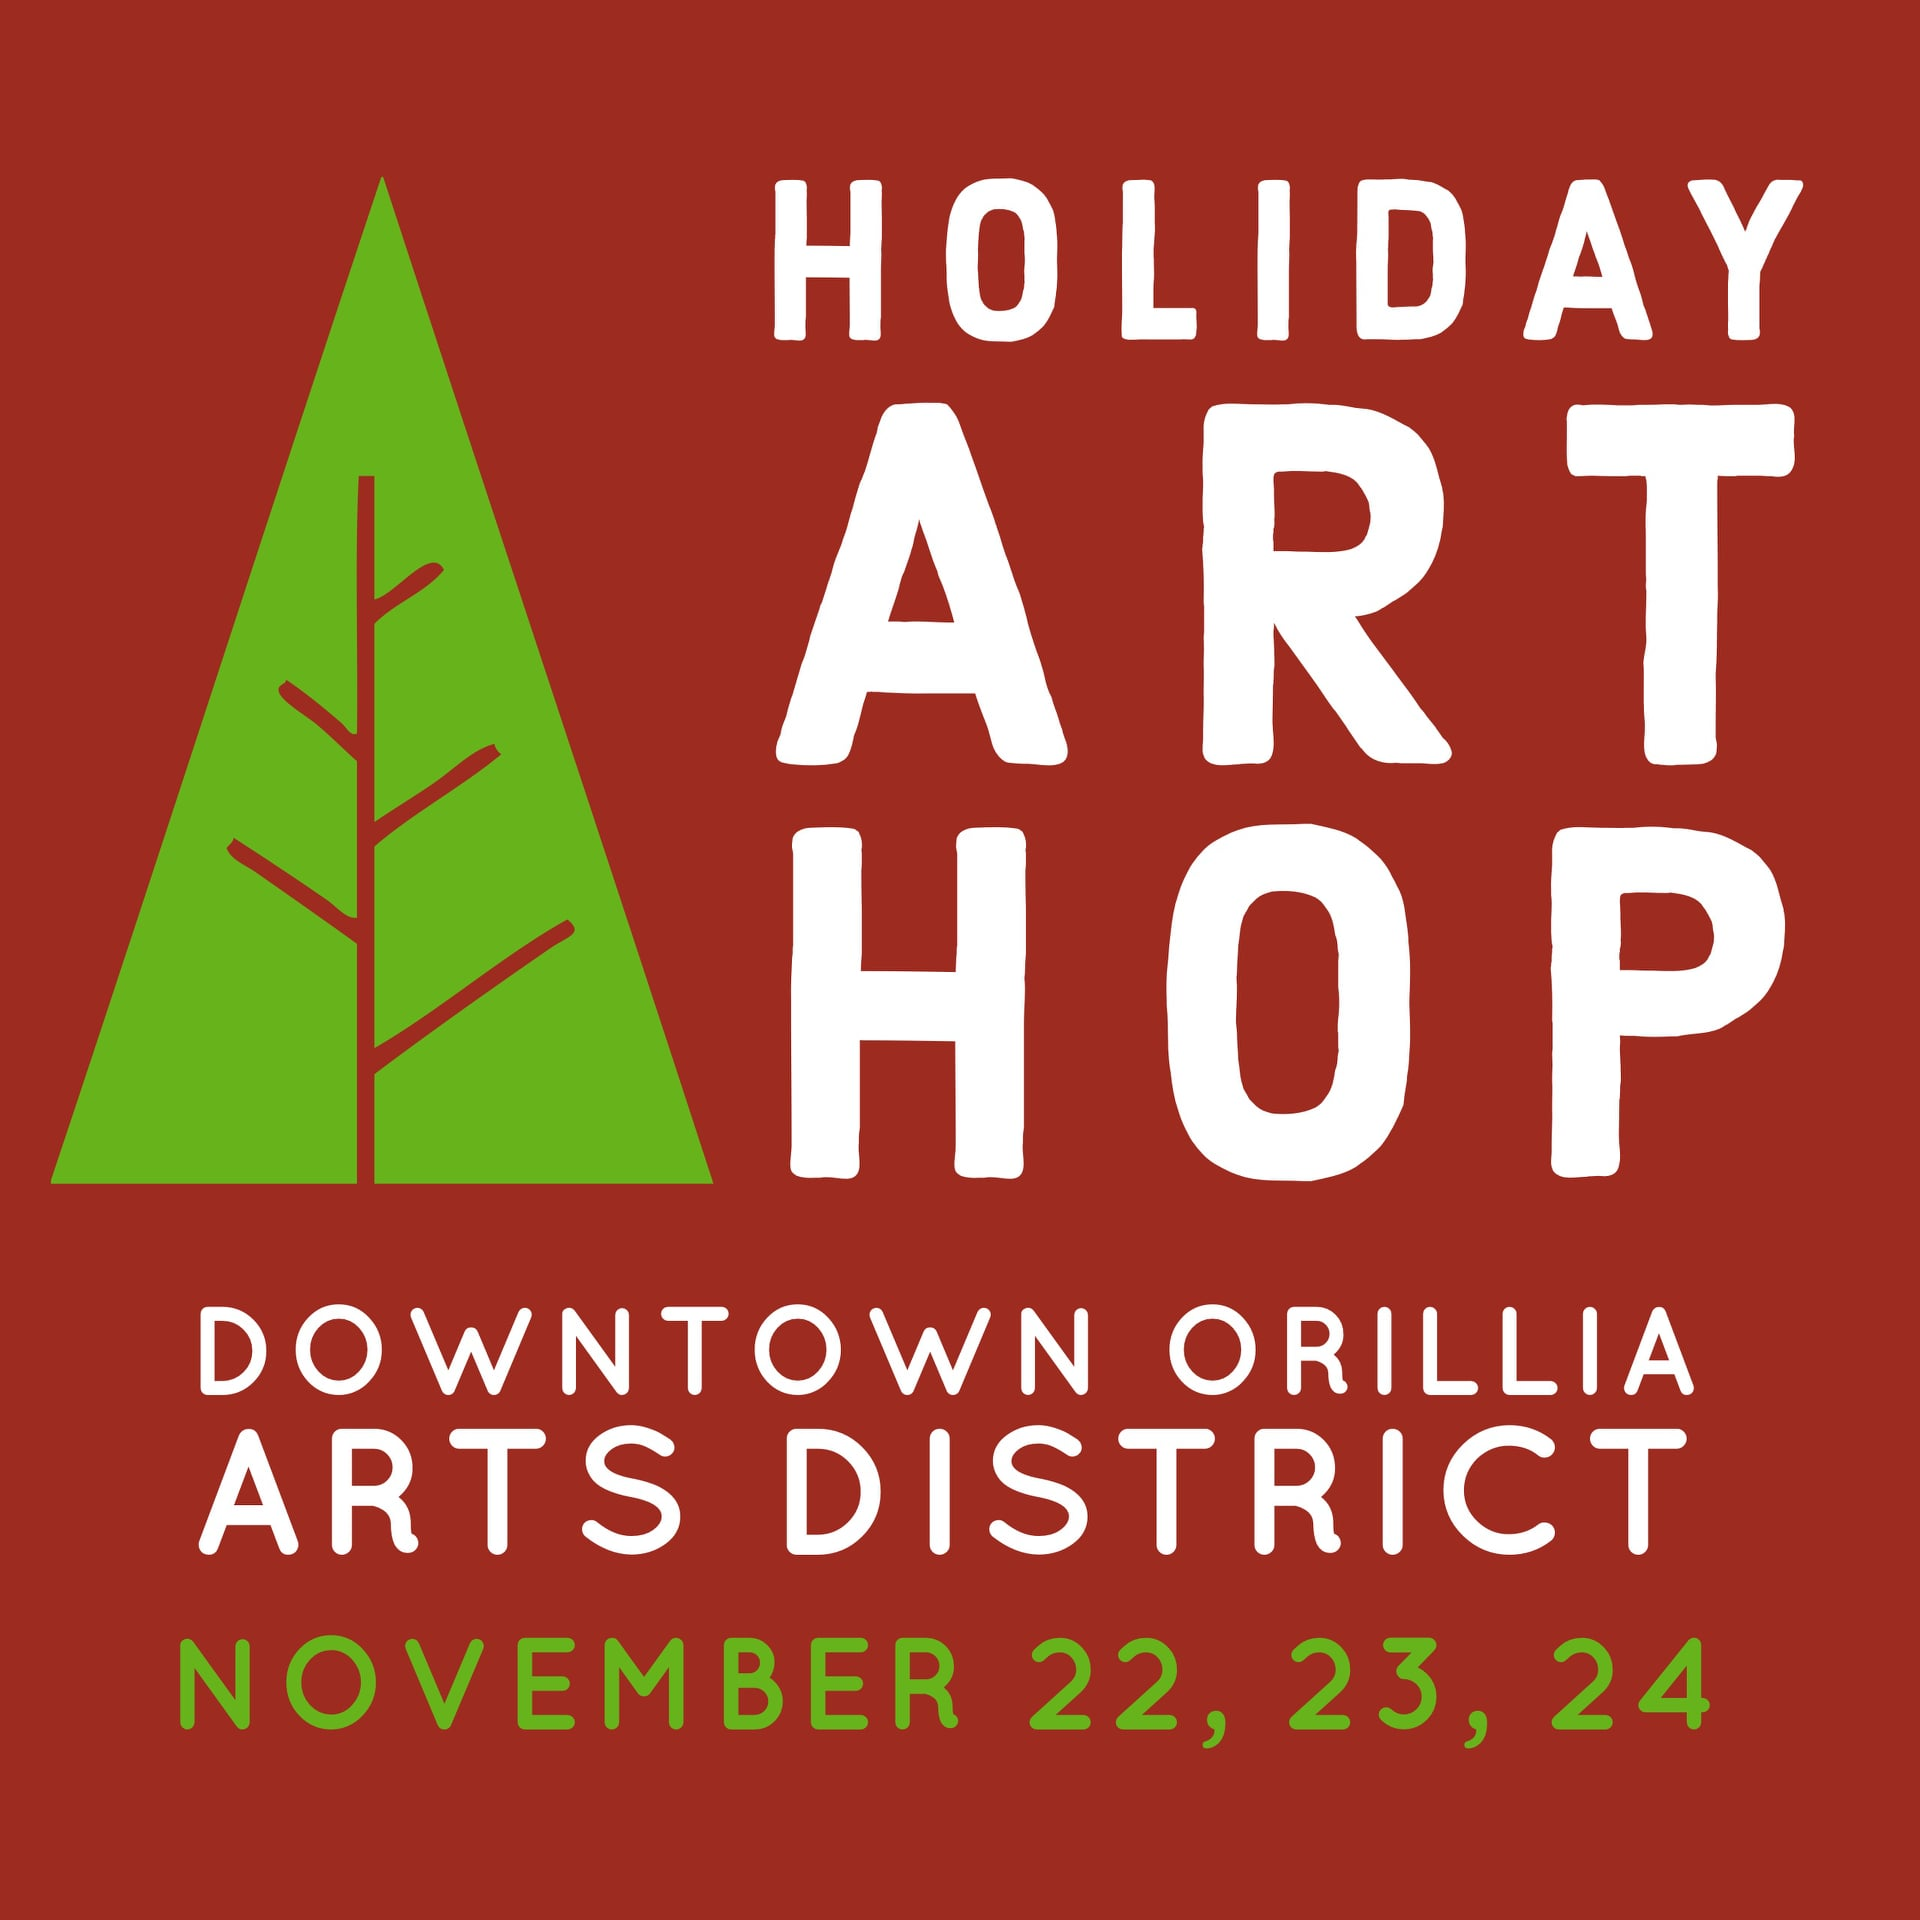 70734805 1809916905818449 6691387819706810368 o - DOWNTOWN ARTS DISTRICT HOLIDAY ART HOP